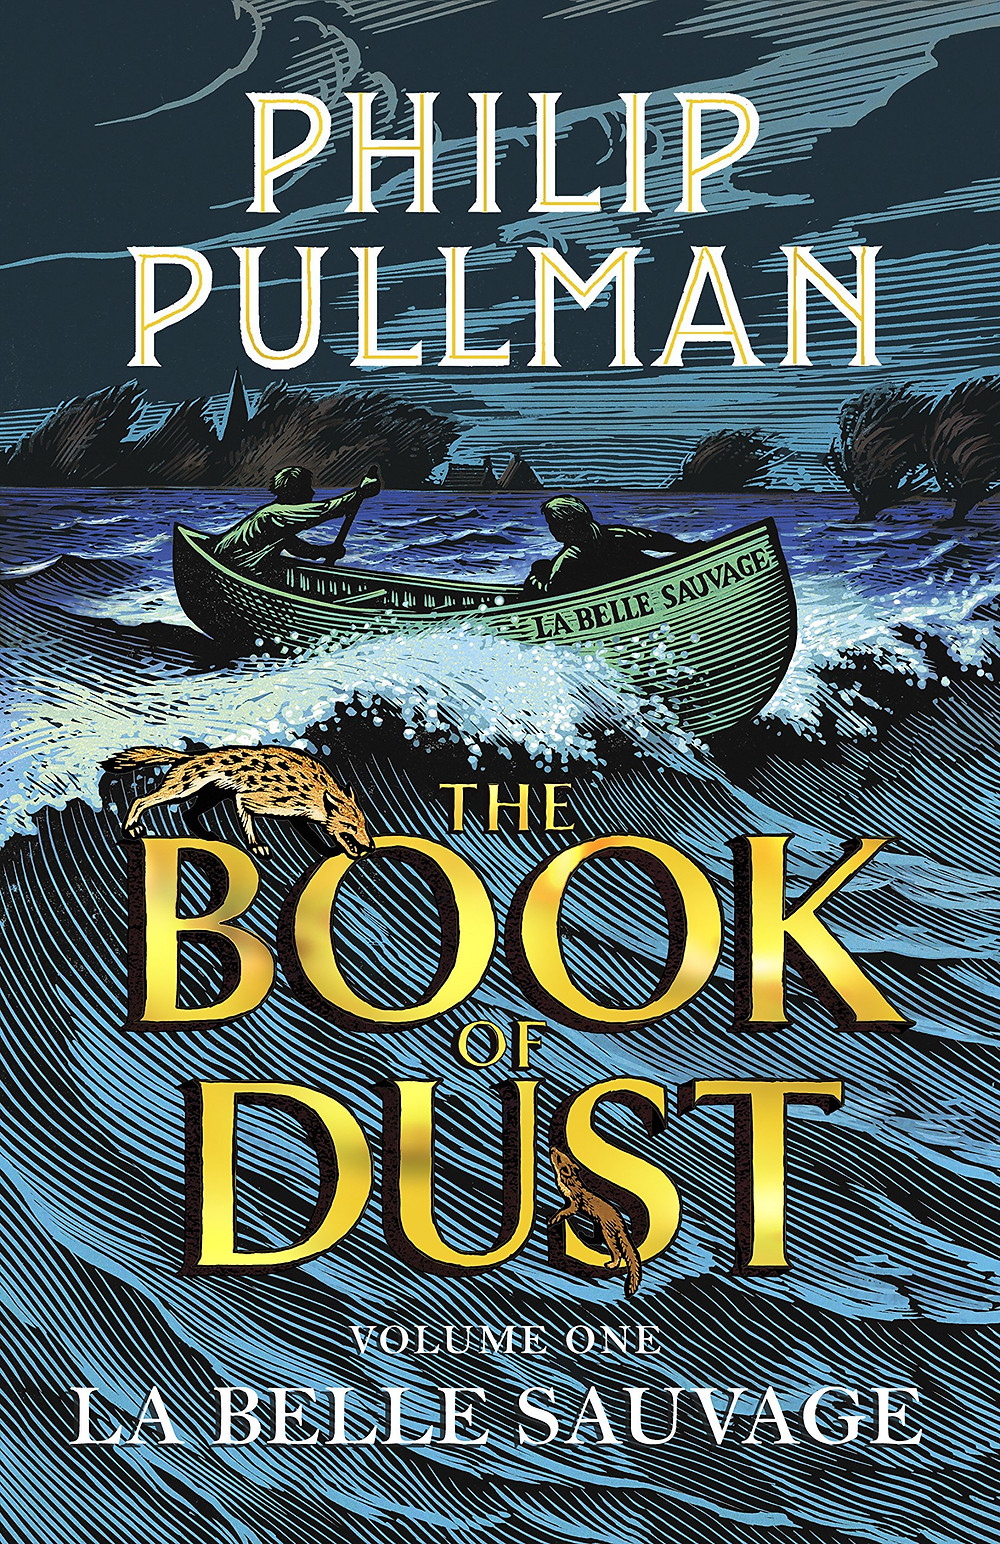 La Belle Sauvage - Philip Pullman Book Cover